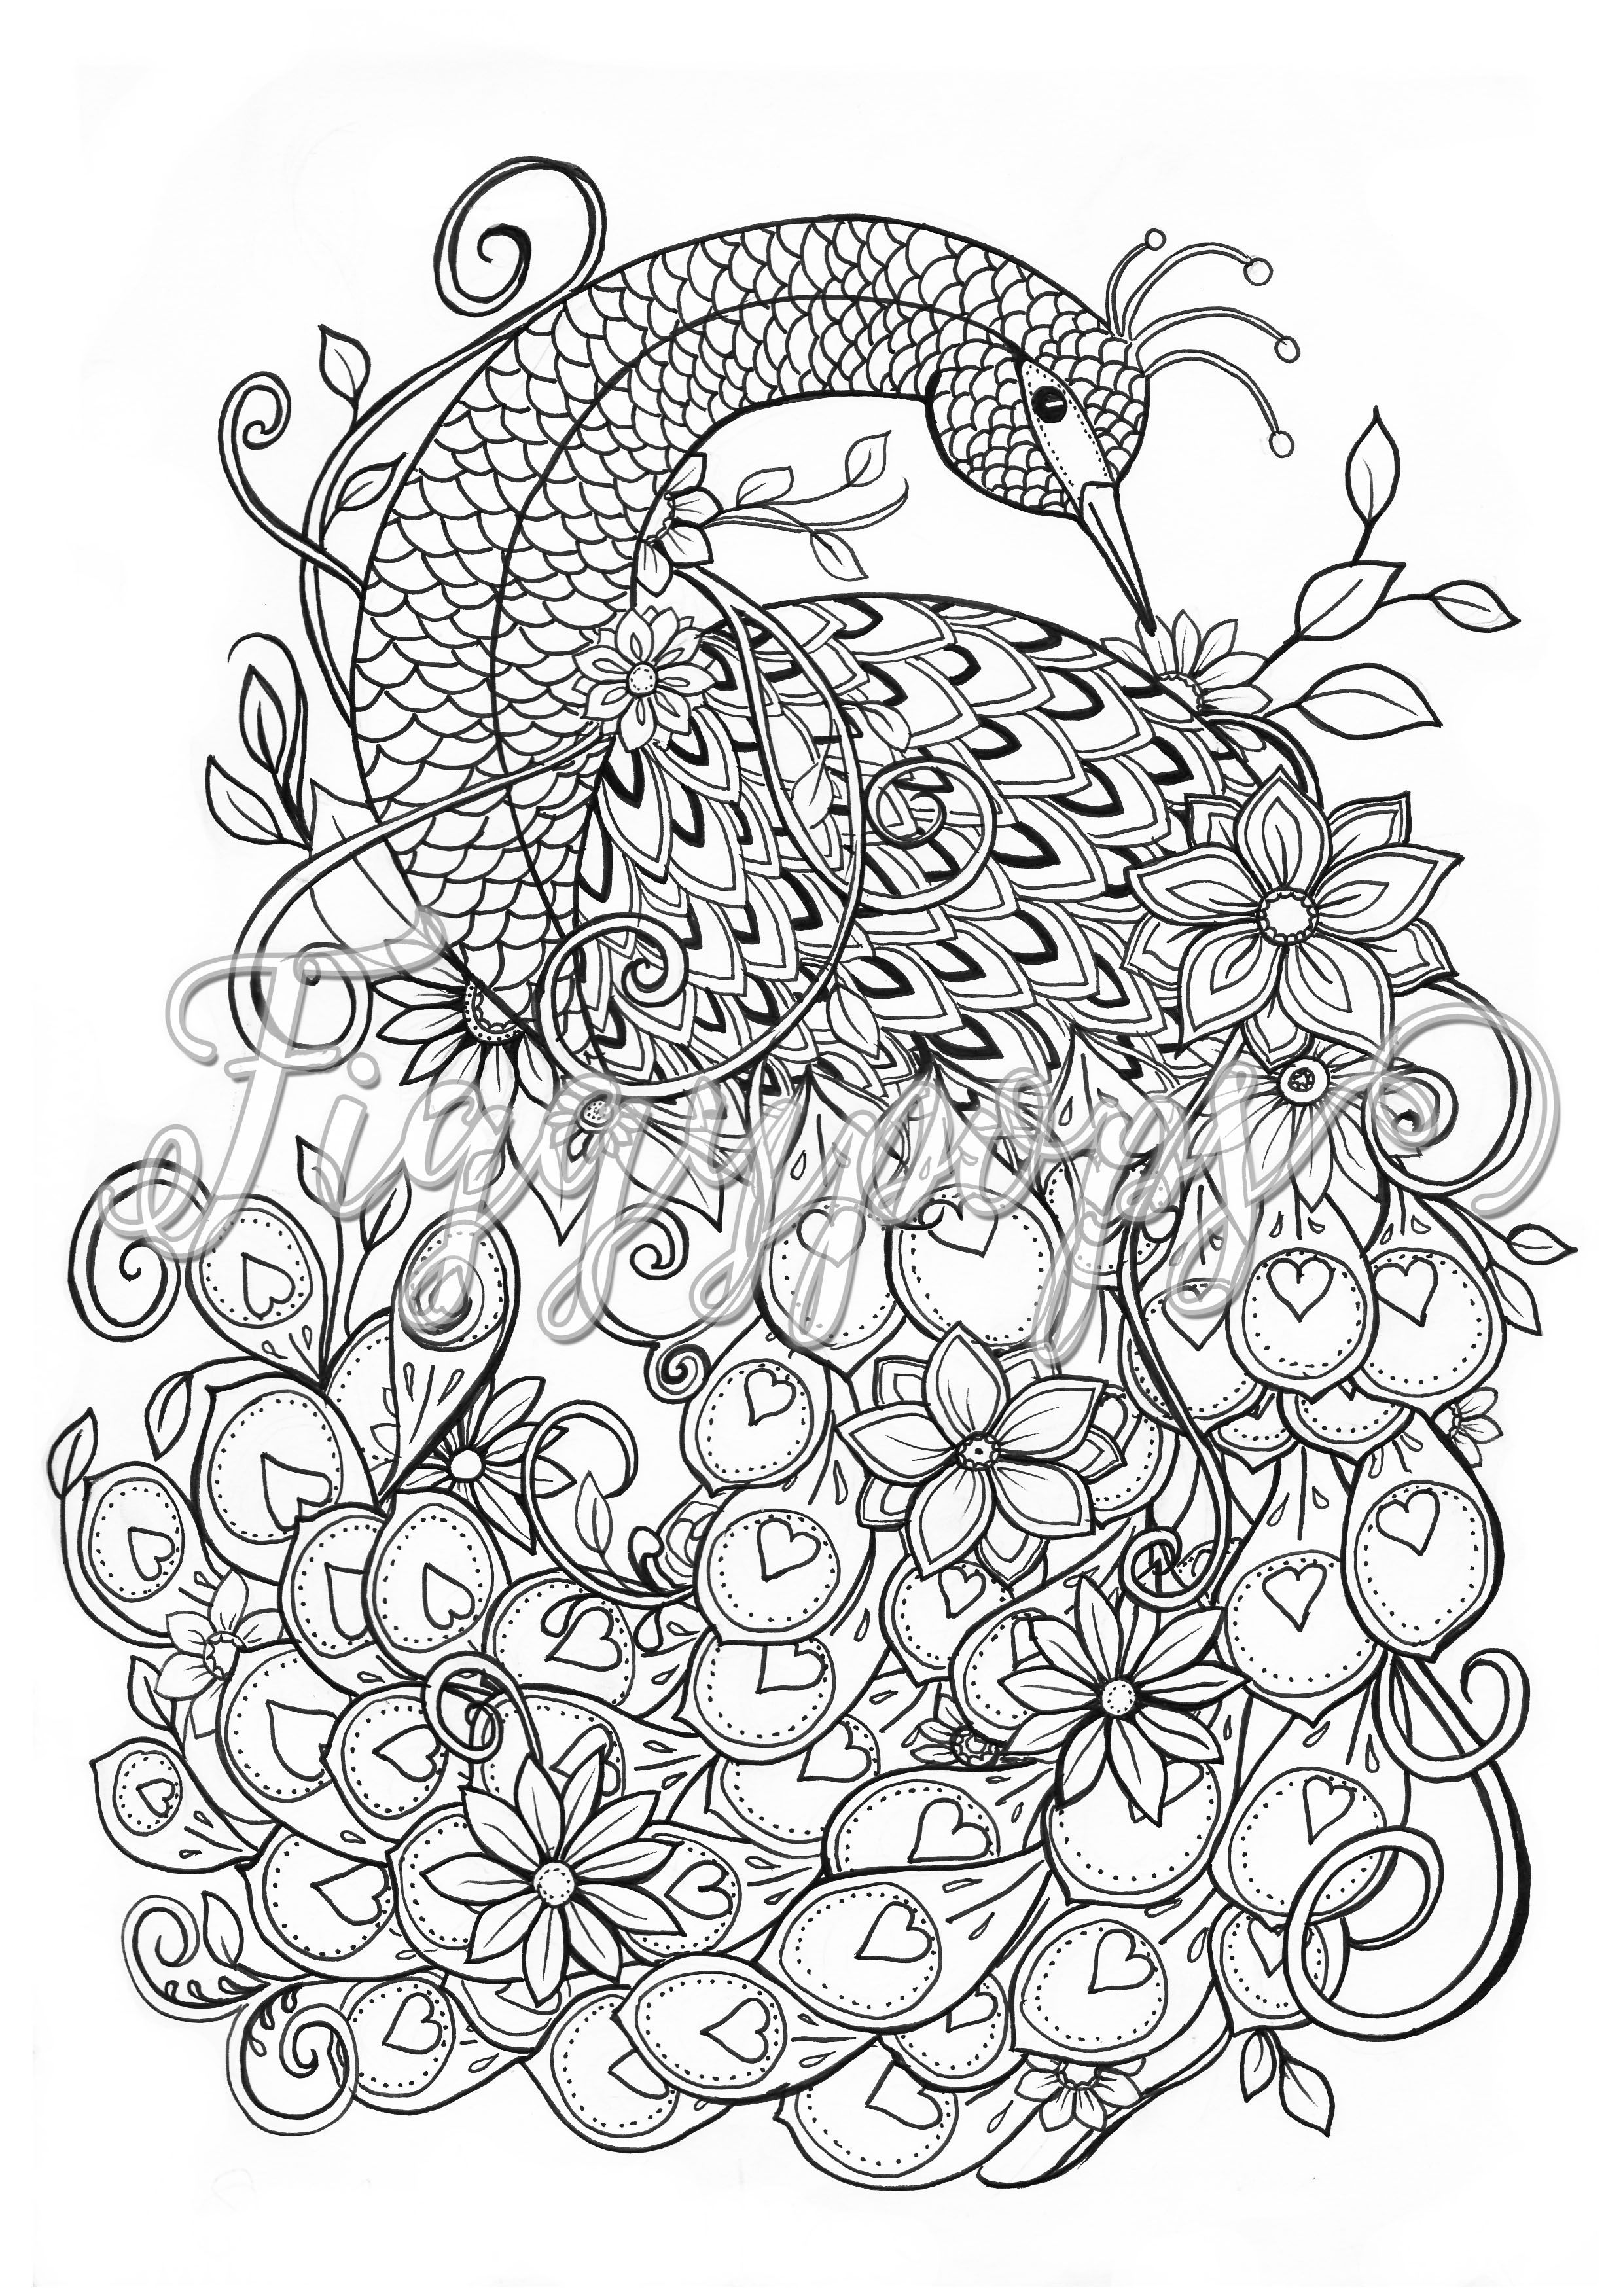 a4 coloring pictures printable coloring pages for kids playgroup a4 size 1 coloring pictures a4